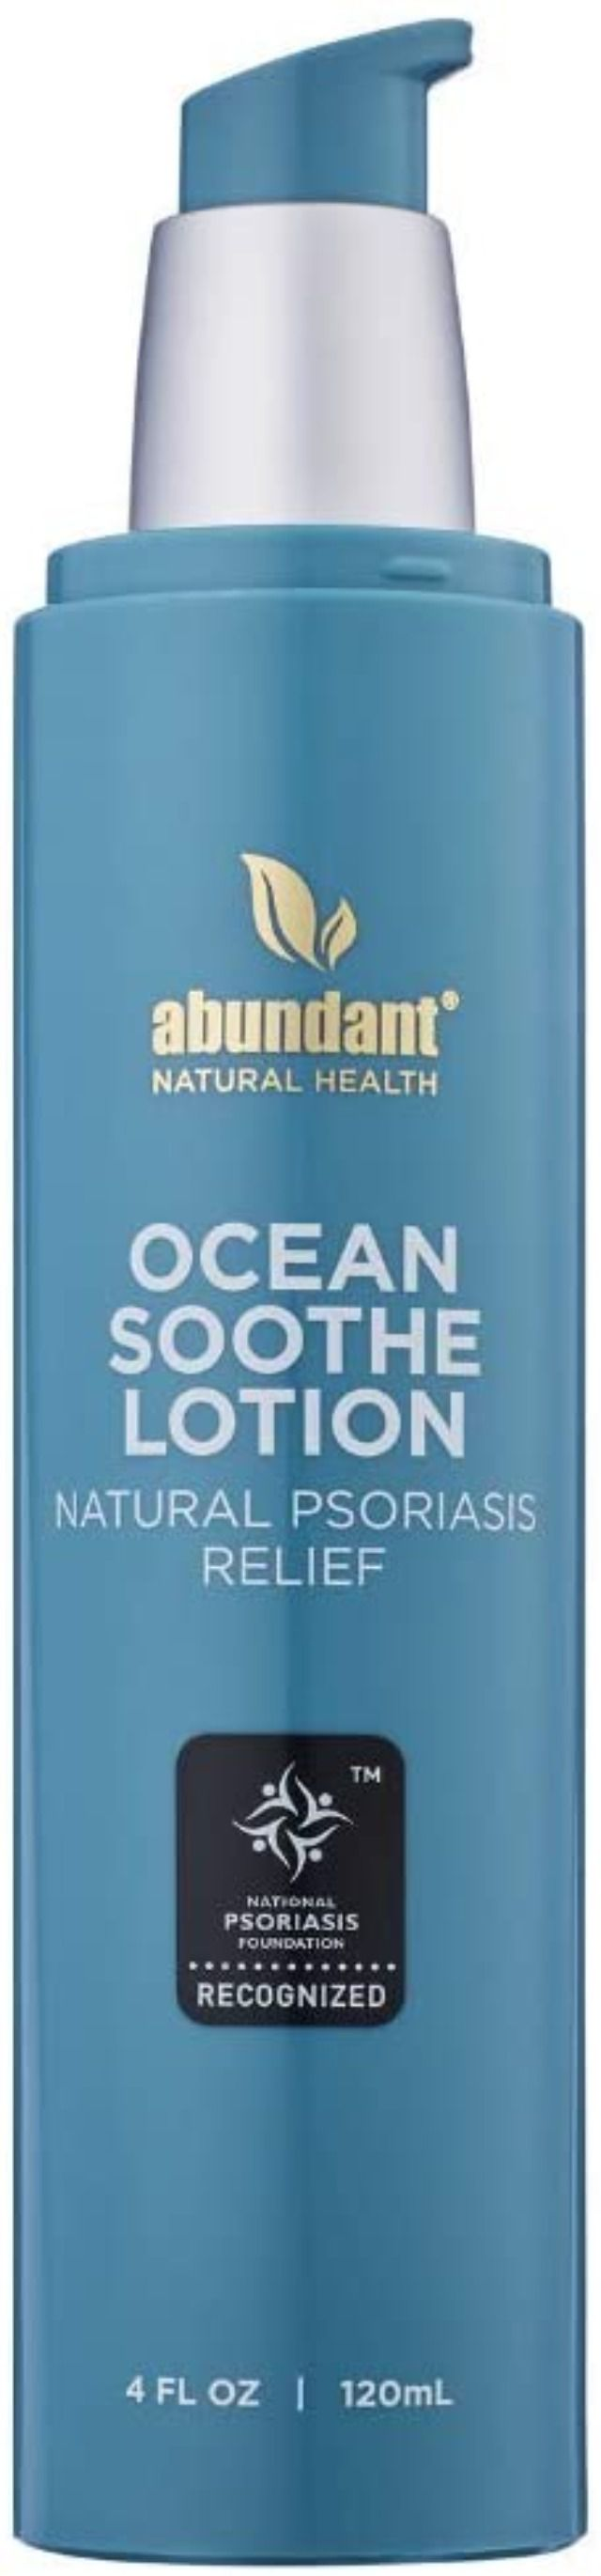 Abundant Natural Health Ocean Soothe Psoriasis Relief Lotion